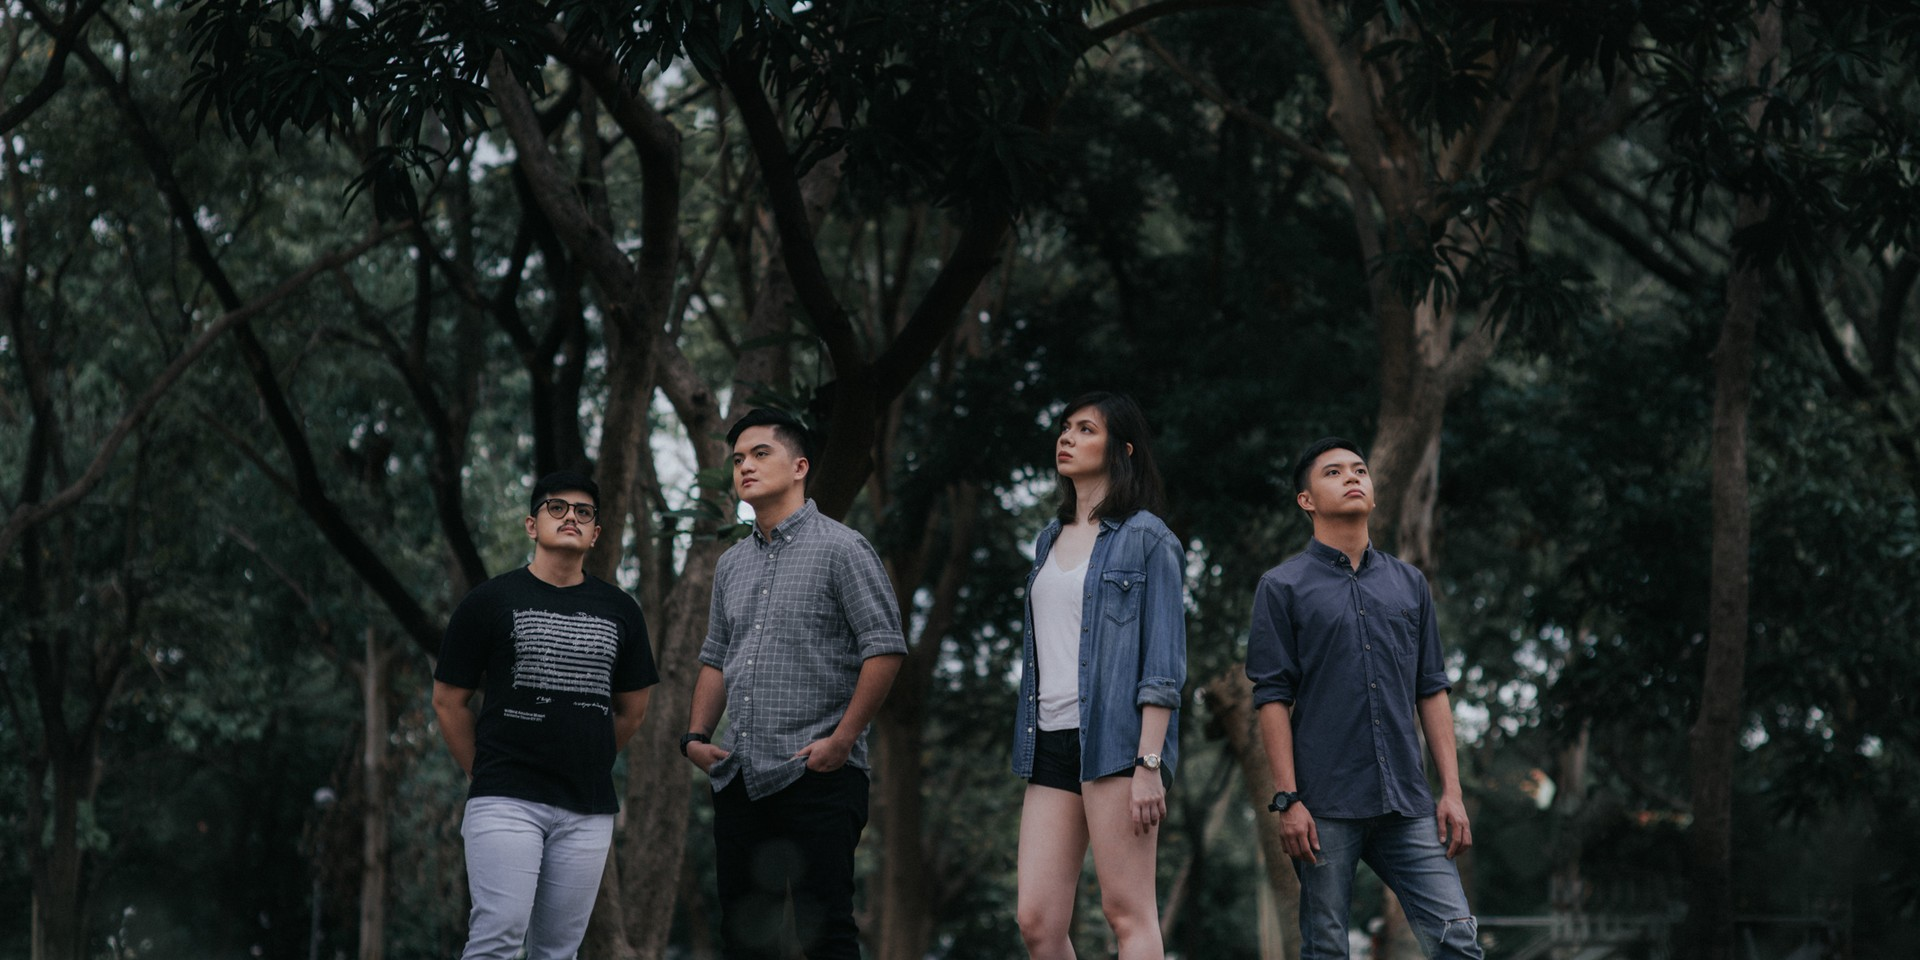 Fools and Foes unveil new single and music video, 'Sheriff' – watch